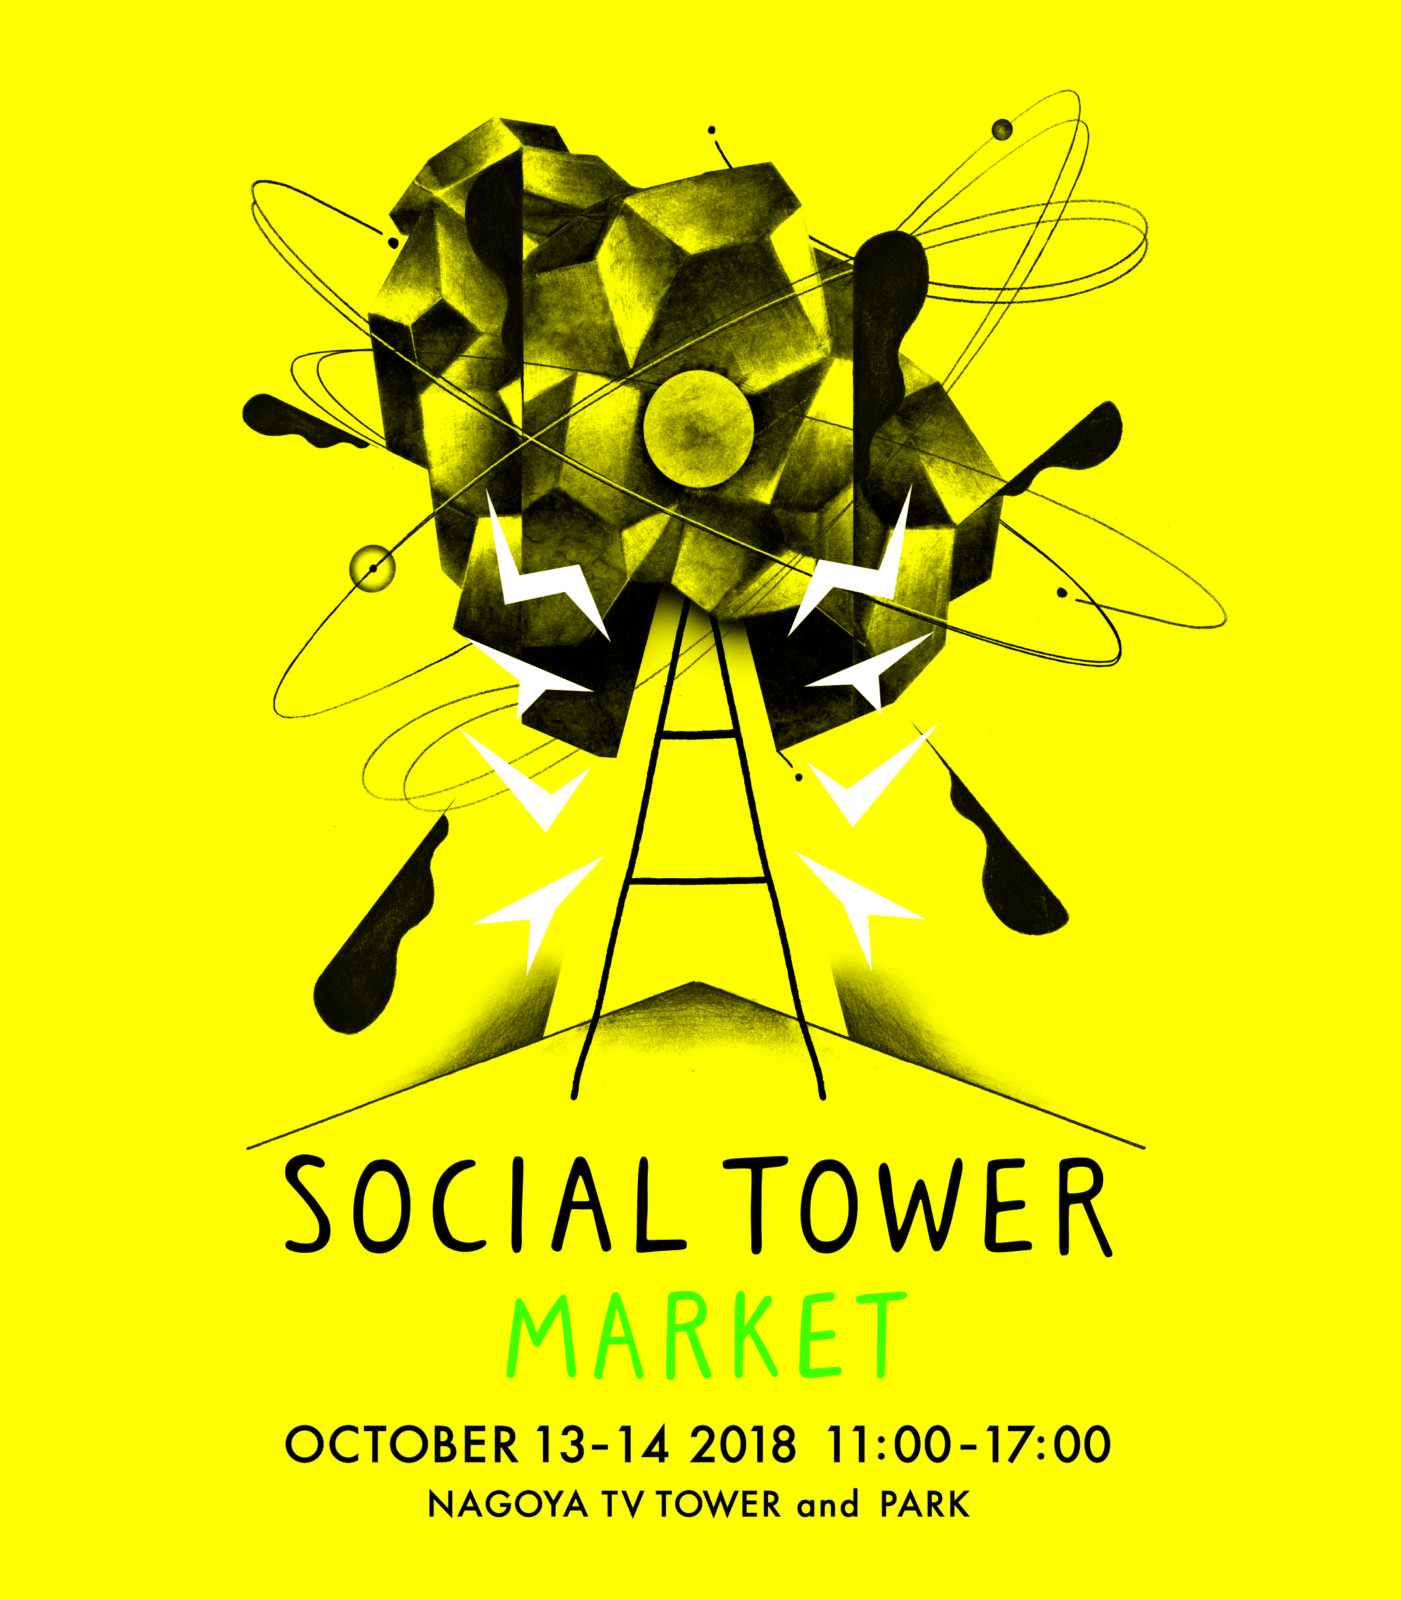 SOCIAL TOWER MARKET 2018 出店!